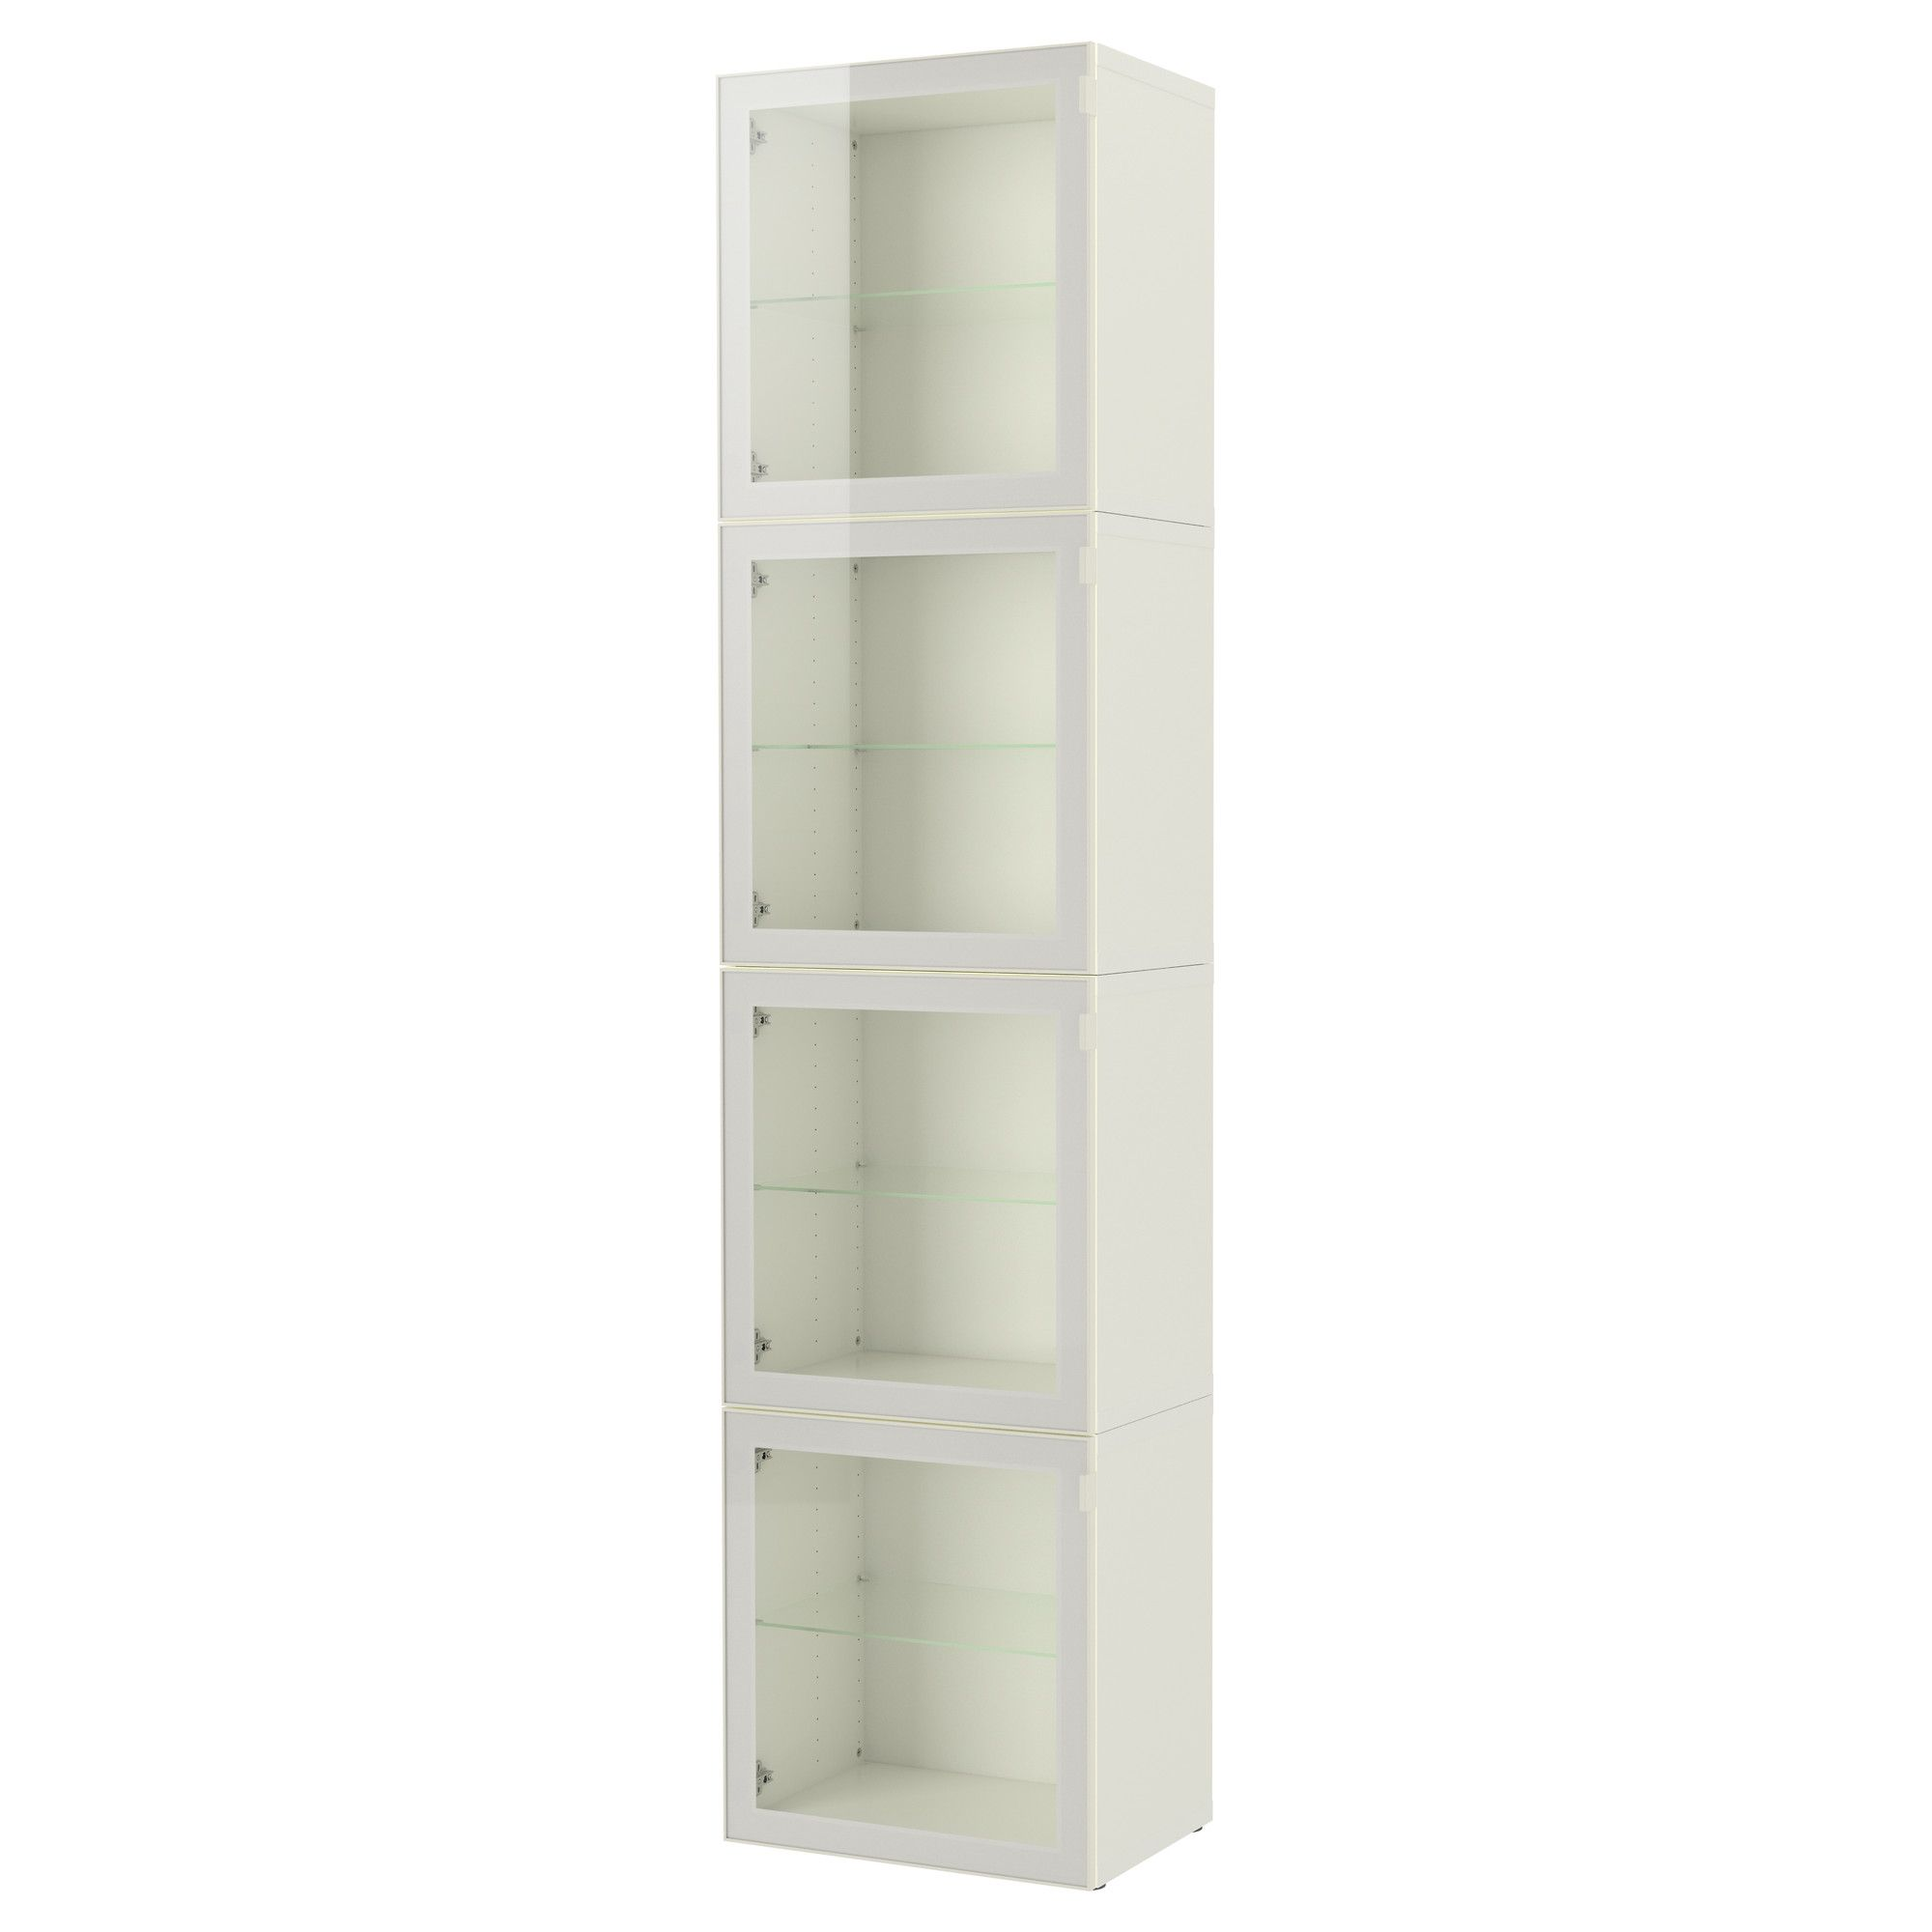 bestà storage bination with glass door white glassvik clear